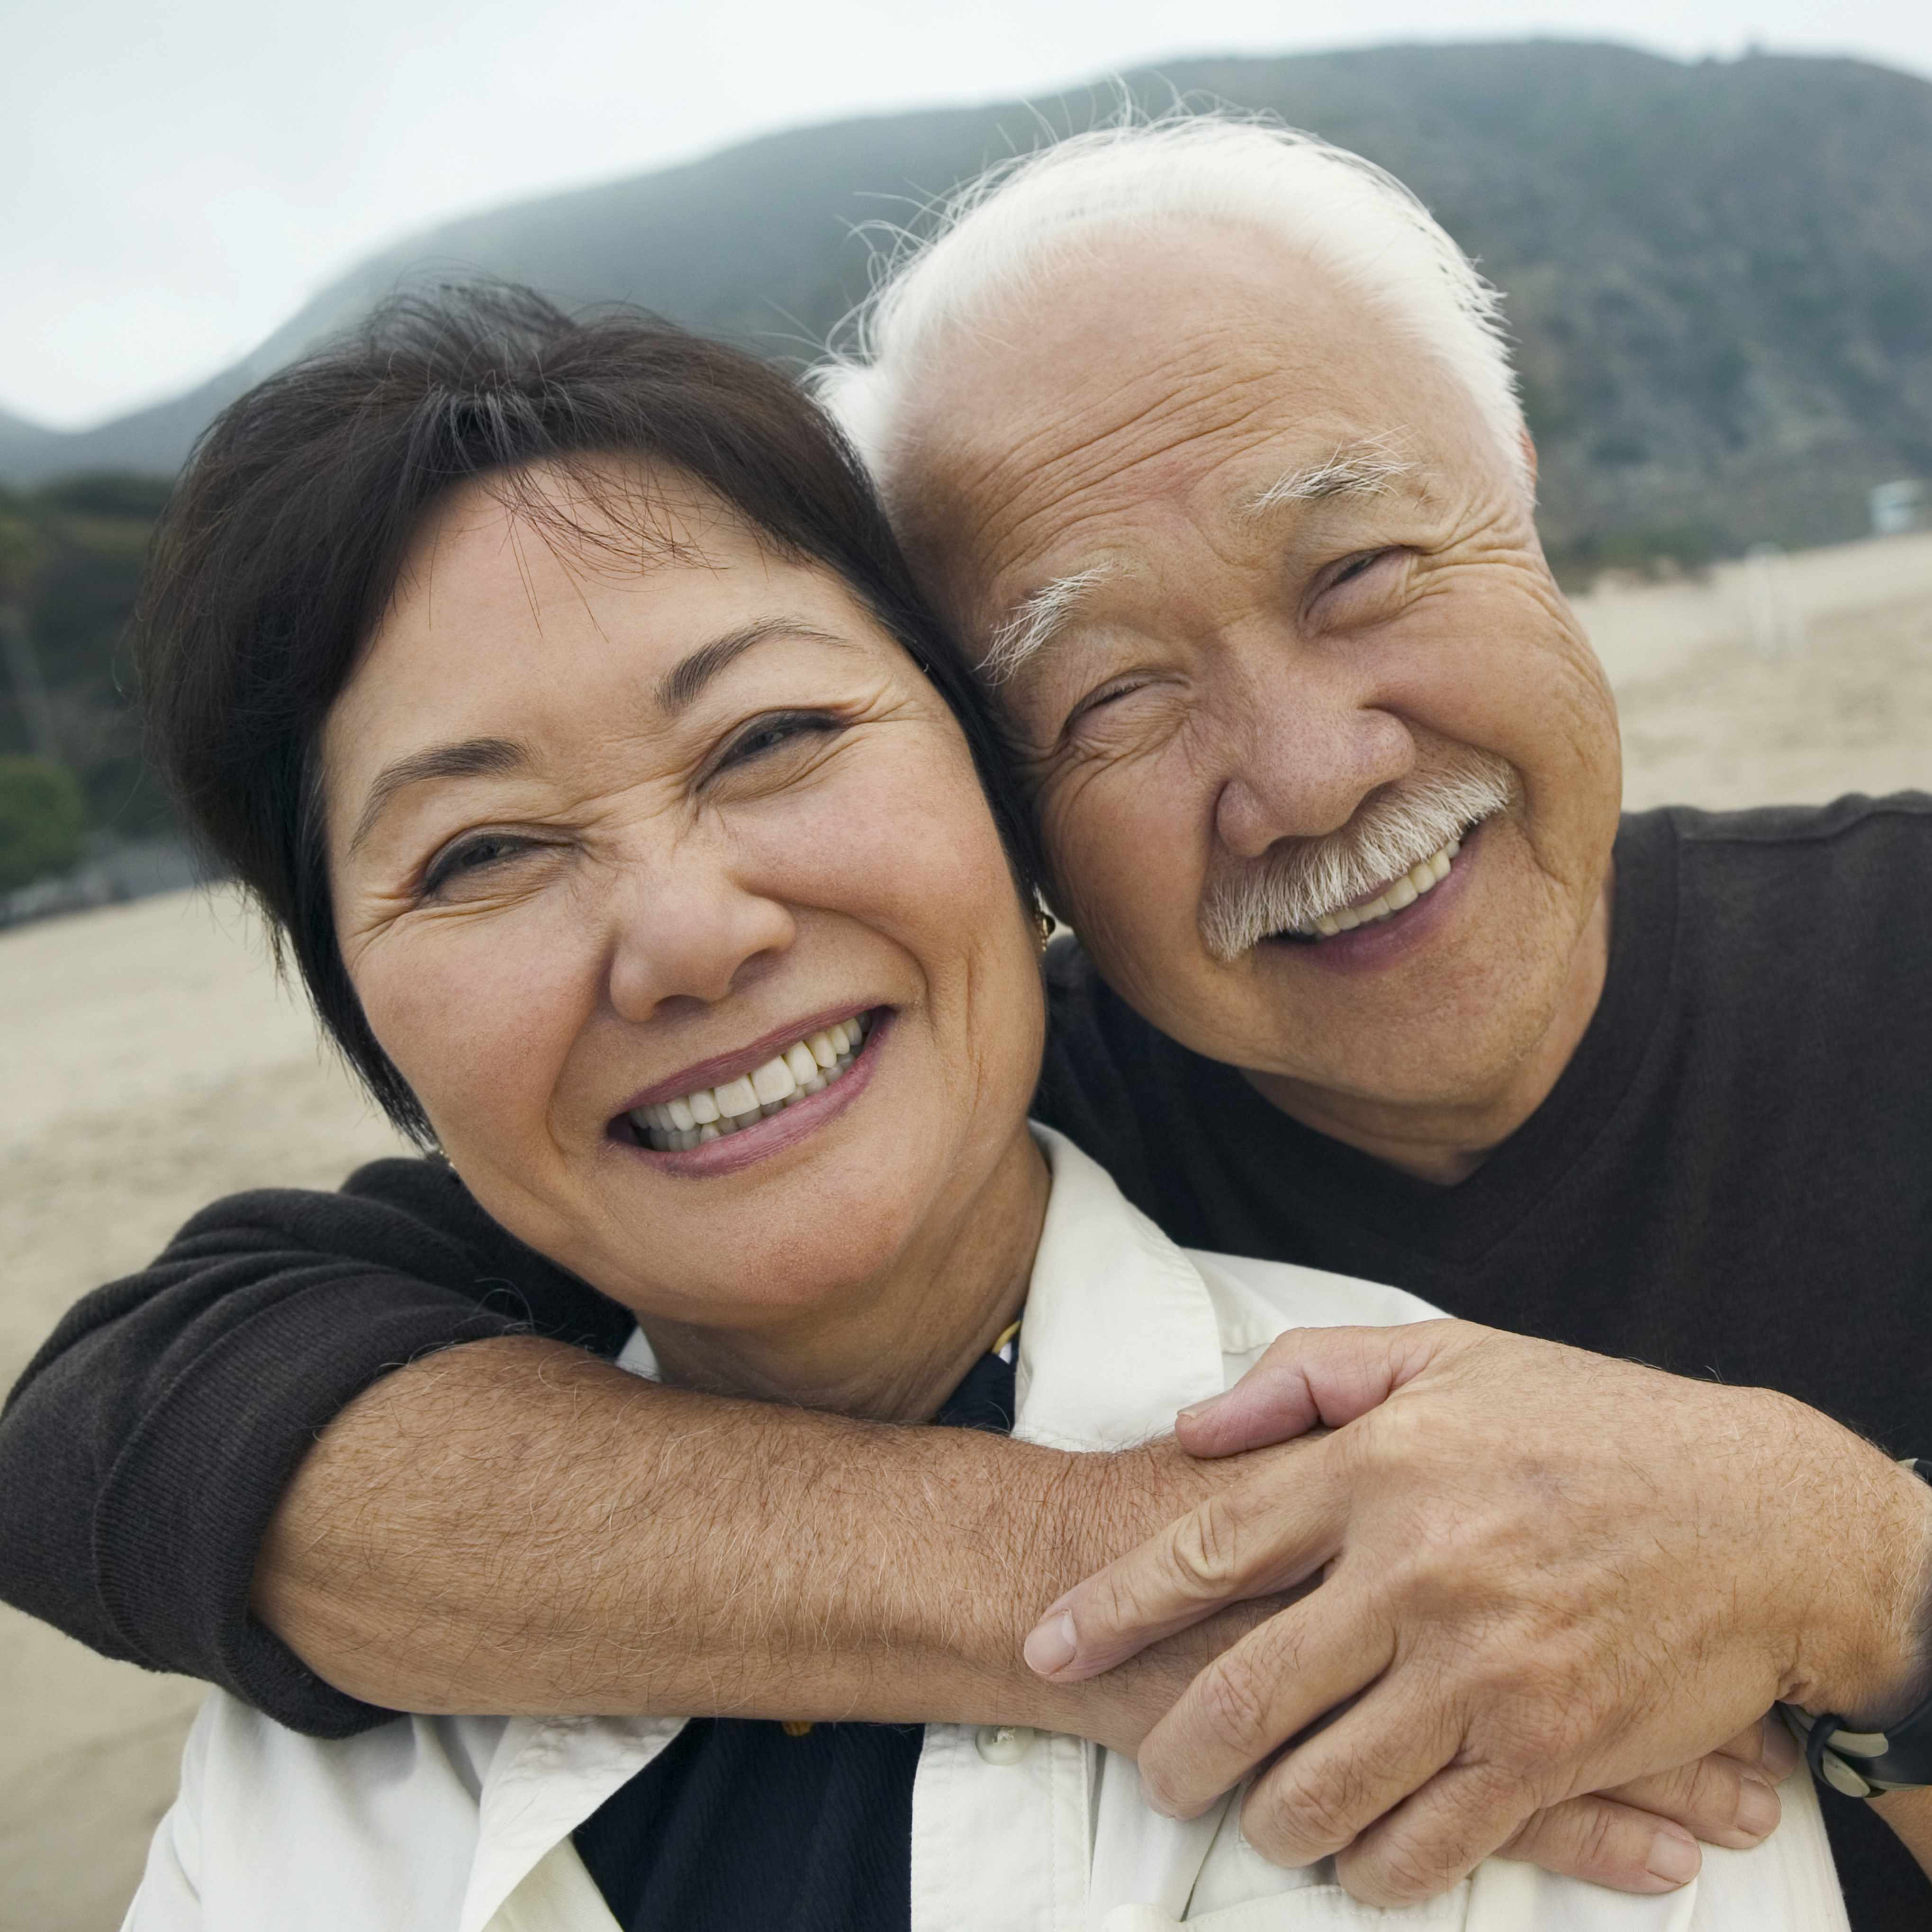 a close-up of a smilng senior couple on a beach, with the man's arms around the woman's shoulders